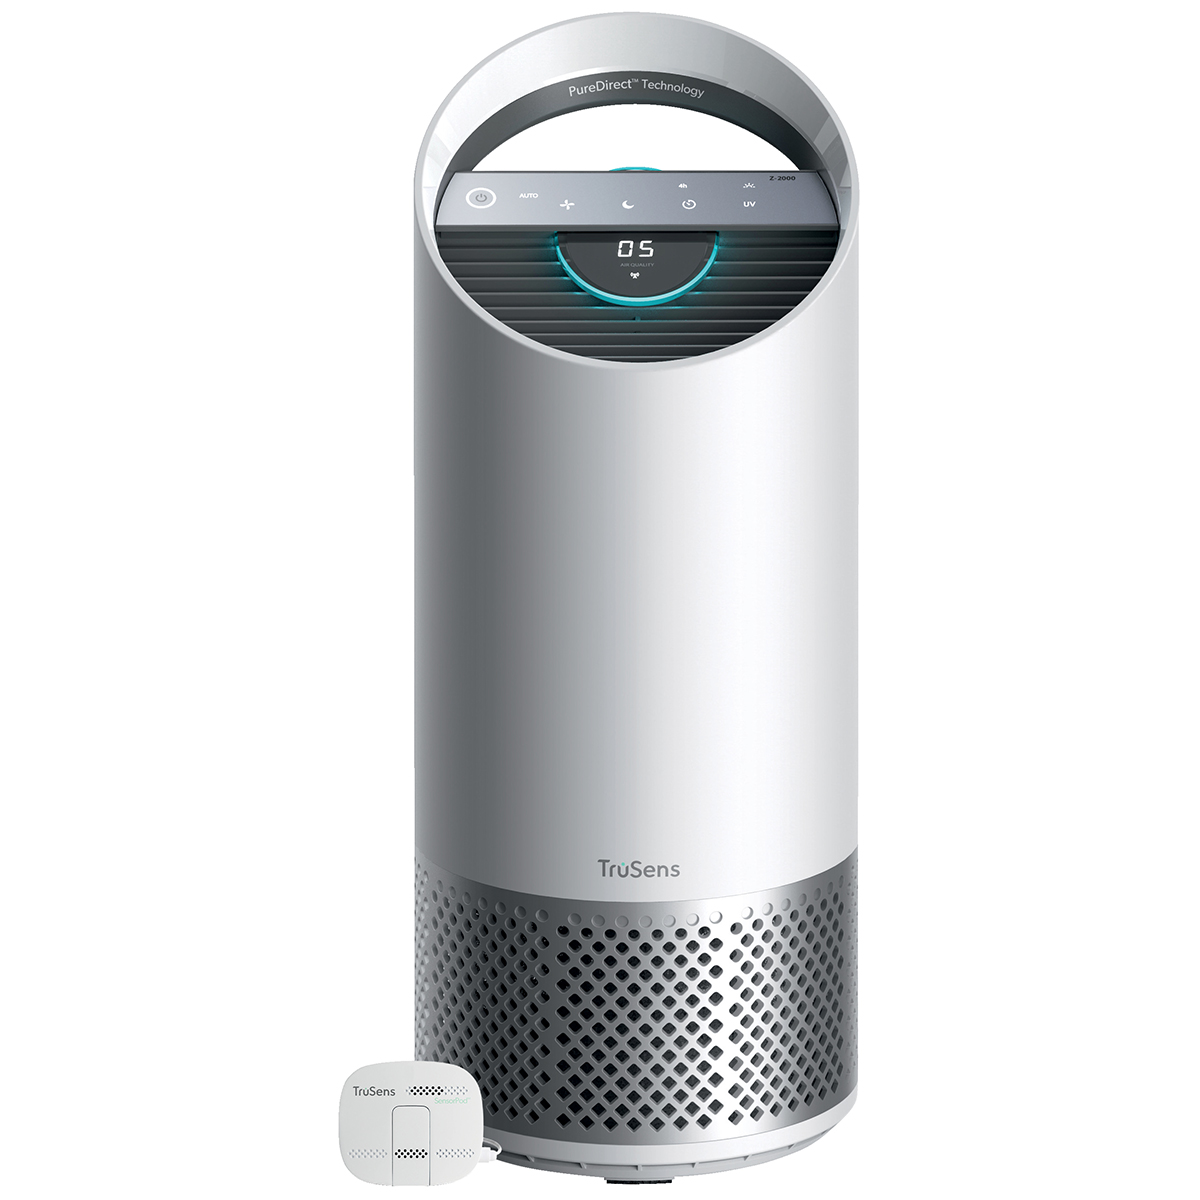 Leitz TruSens Z-2000 Medium Room Air Purifier with SensorPod